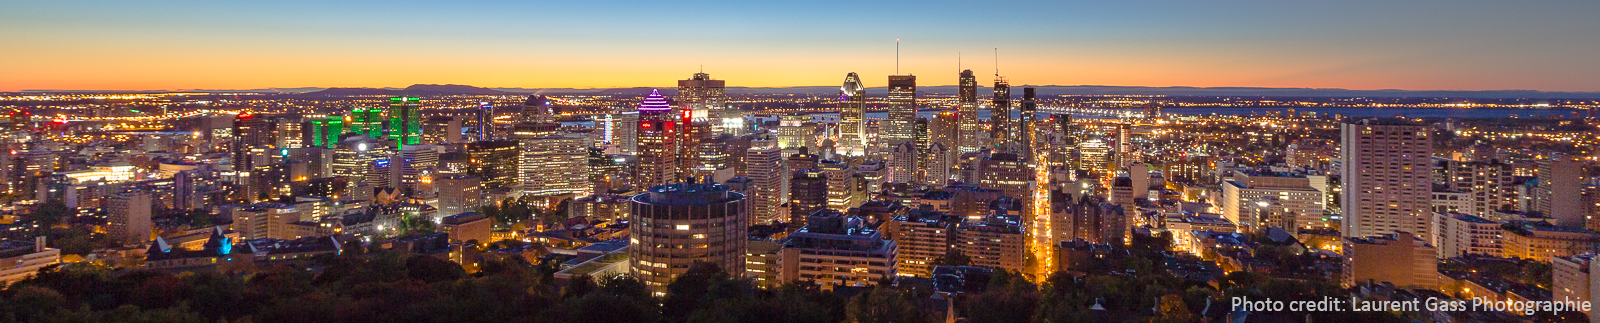 Montreal_Laurent-Gass-Photographie